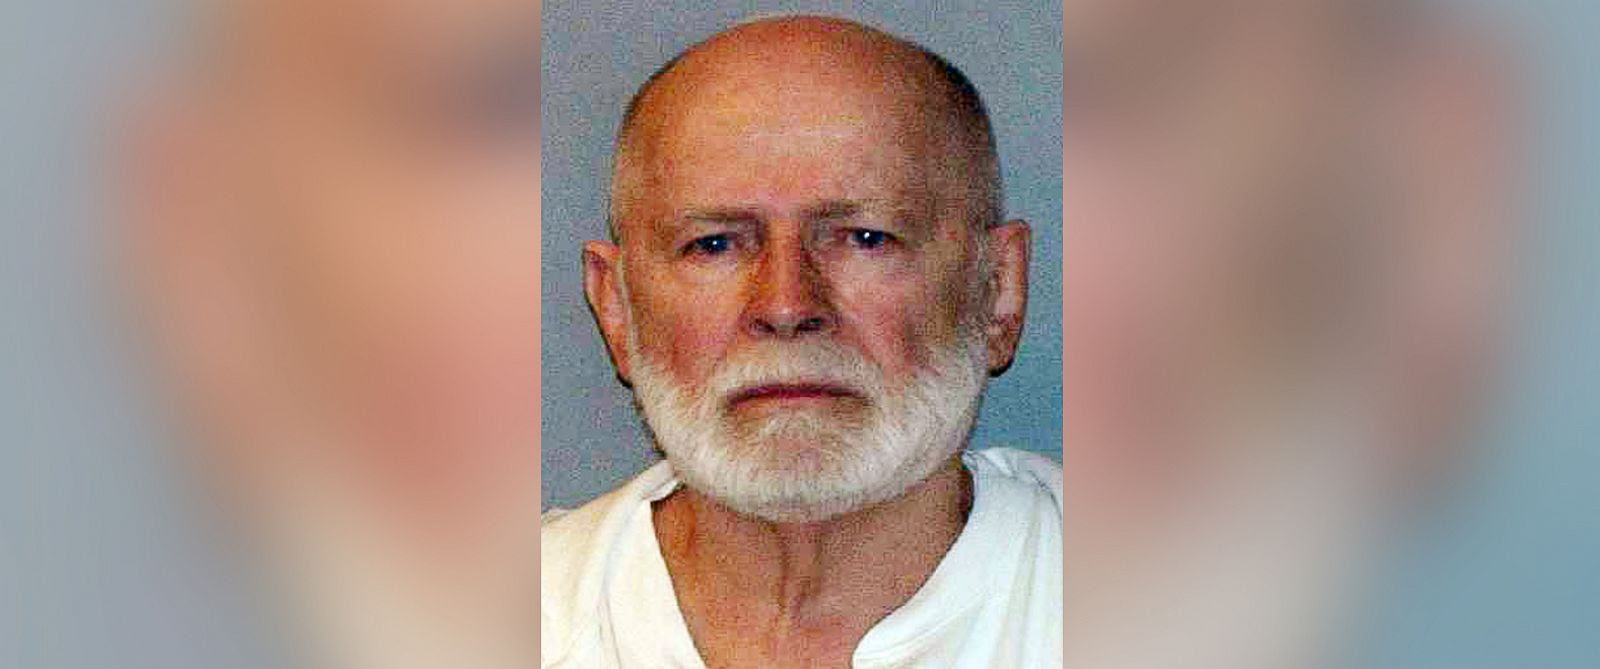 """PHOTO: James """"Whitey"""" Bulger is shown in this June 23, 2011 booking photo."""